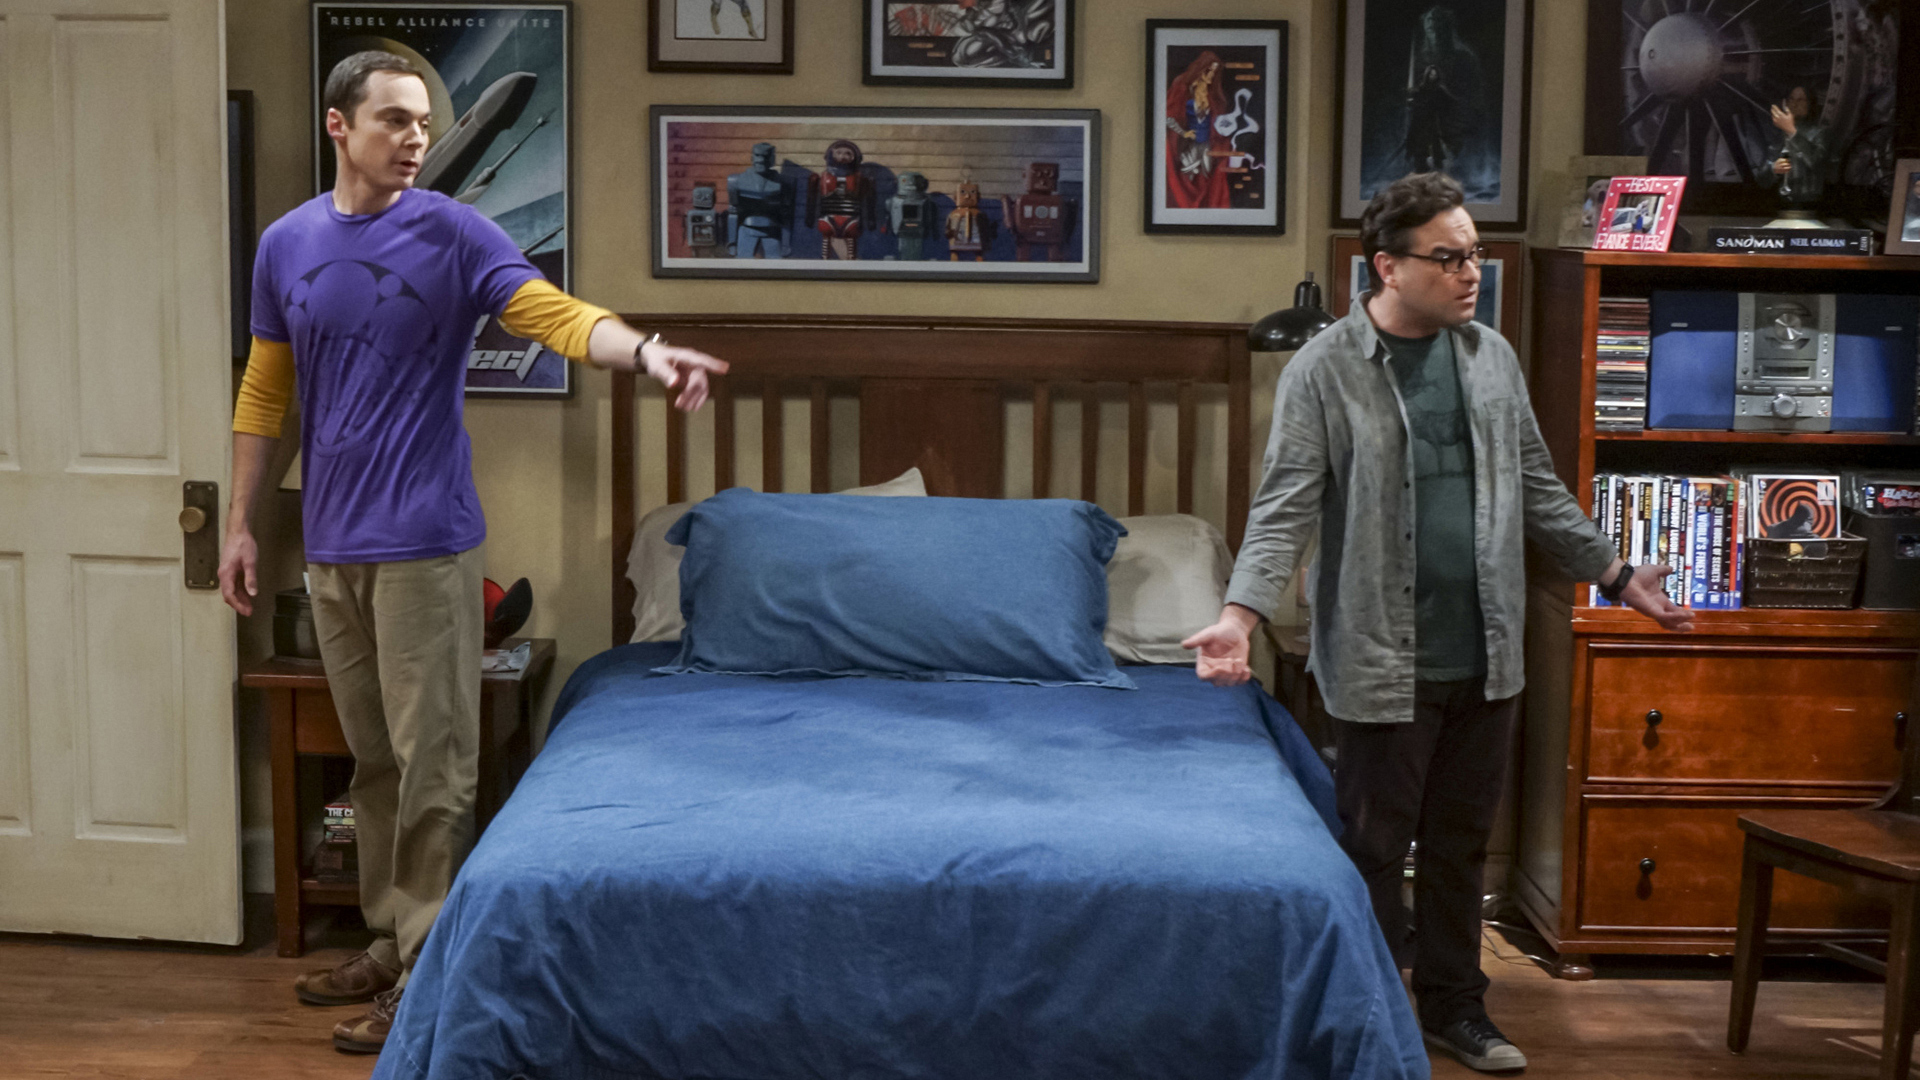 Sheldon points out that some of Leonard's collectibles have gone missing.